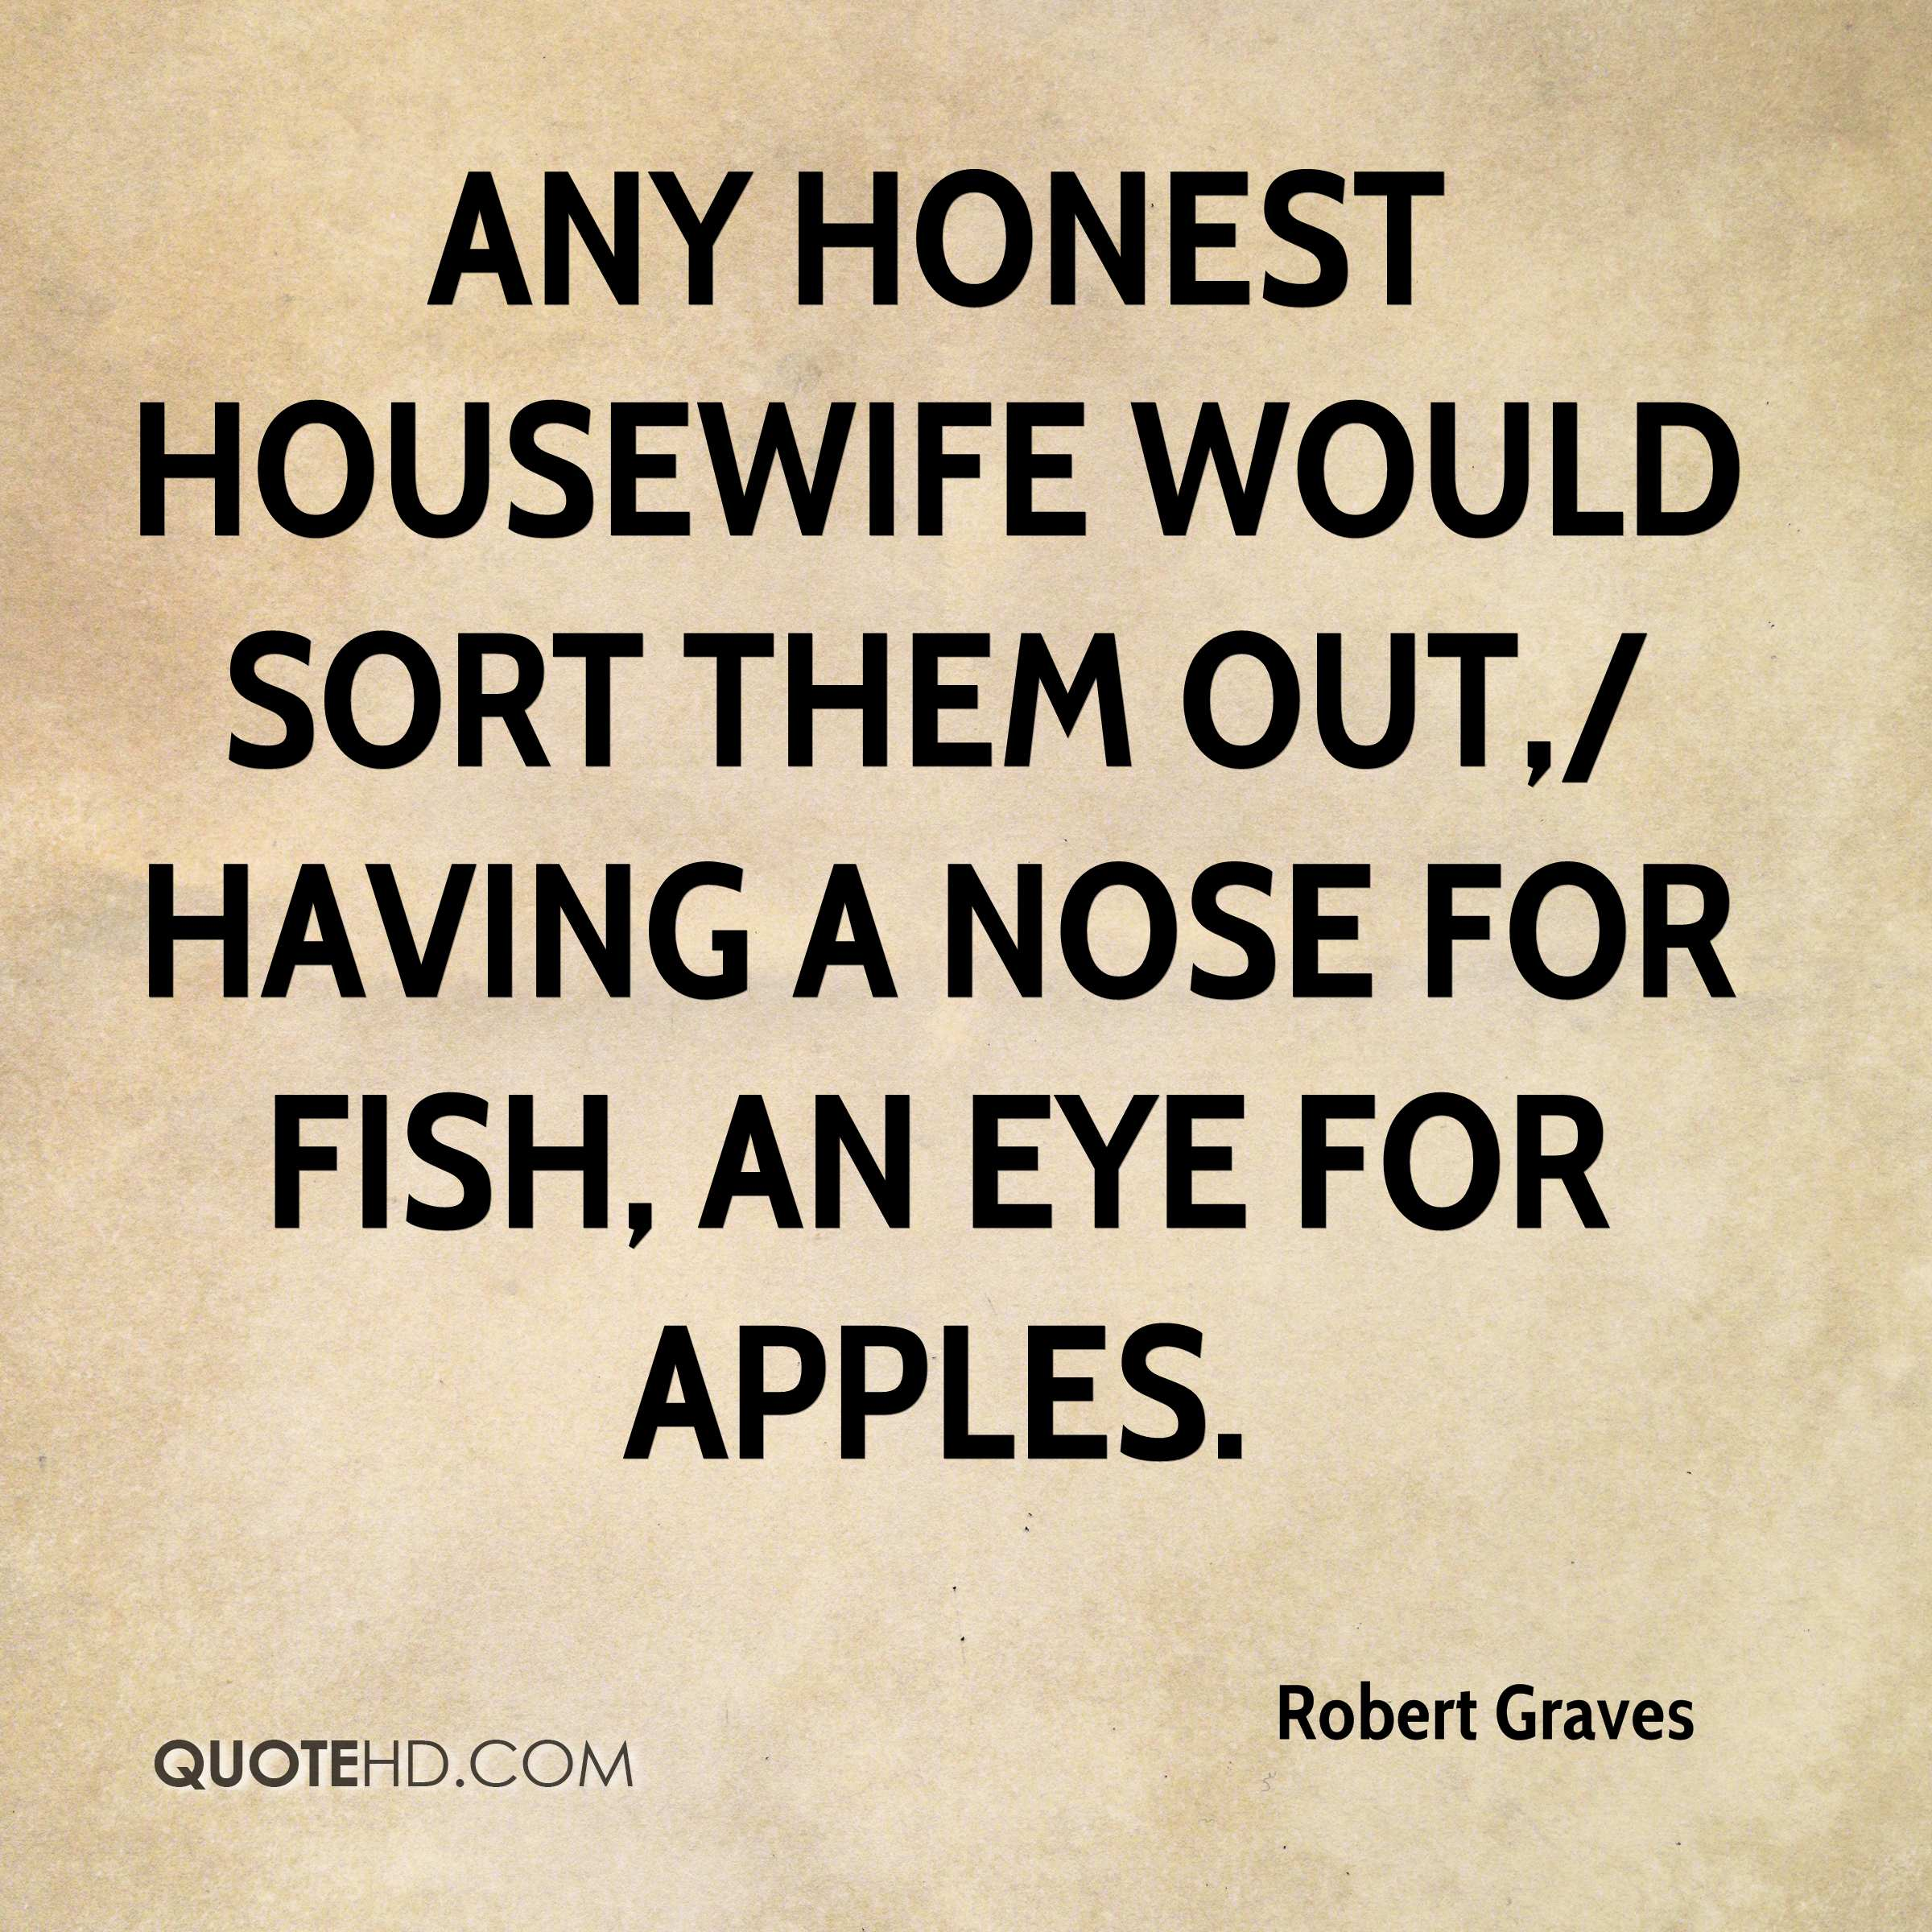 Any honest housewife would sort them out,/ Having a nose for fish, an eye for apples.